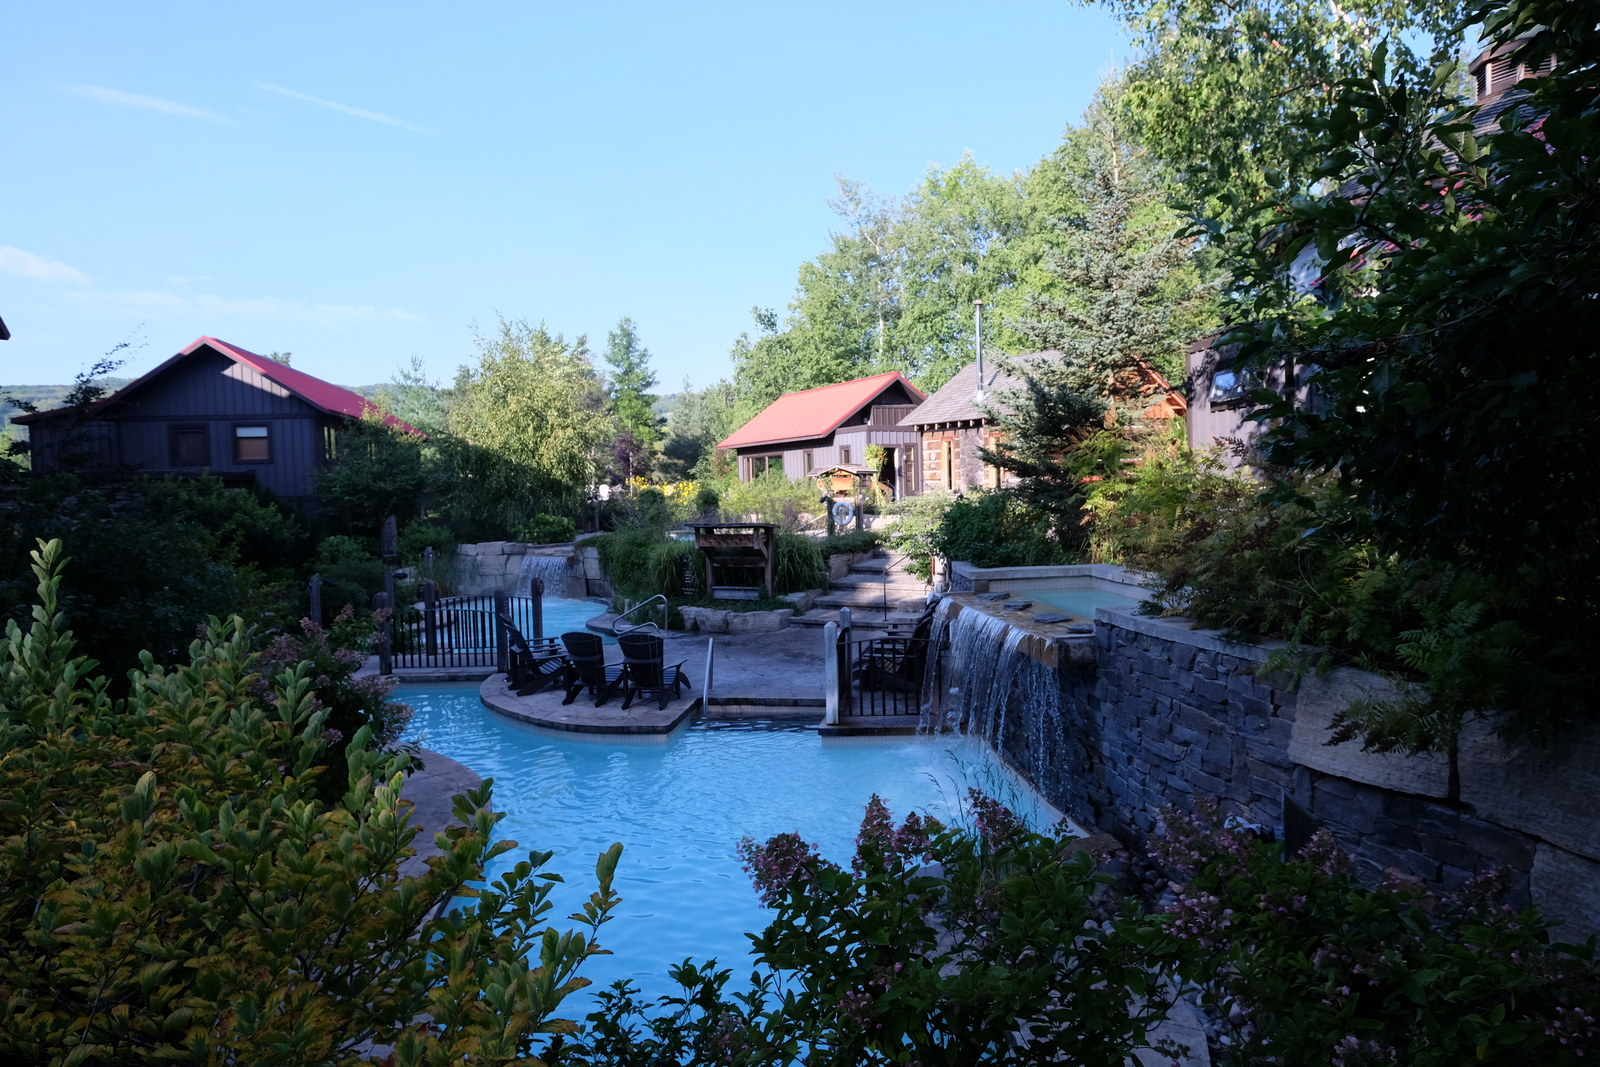 The Scandinave Spa at Blue Mountain is a perfect spot for soaking your cares away. - JIM BYERS PHOTO